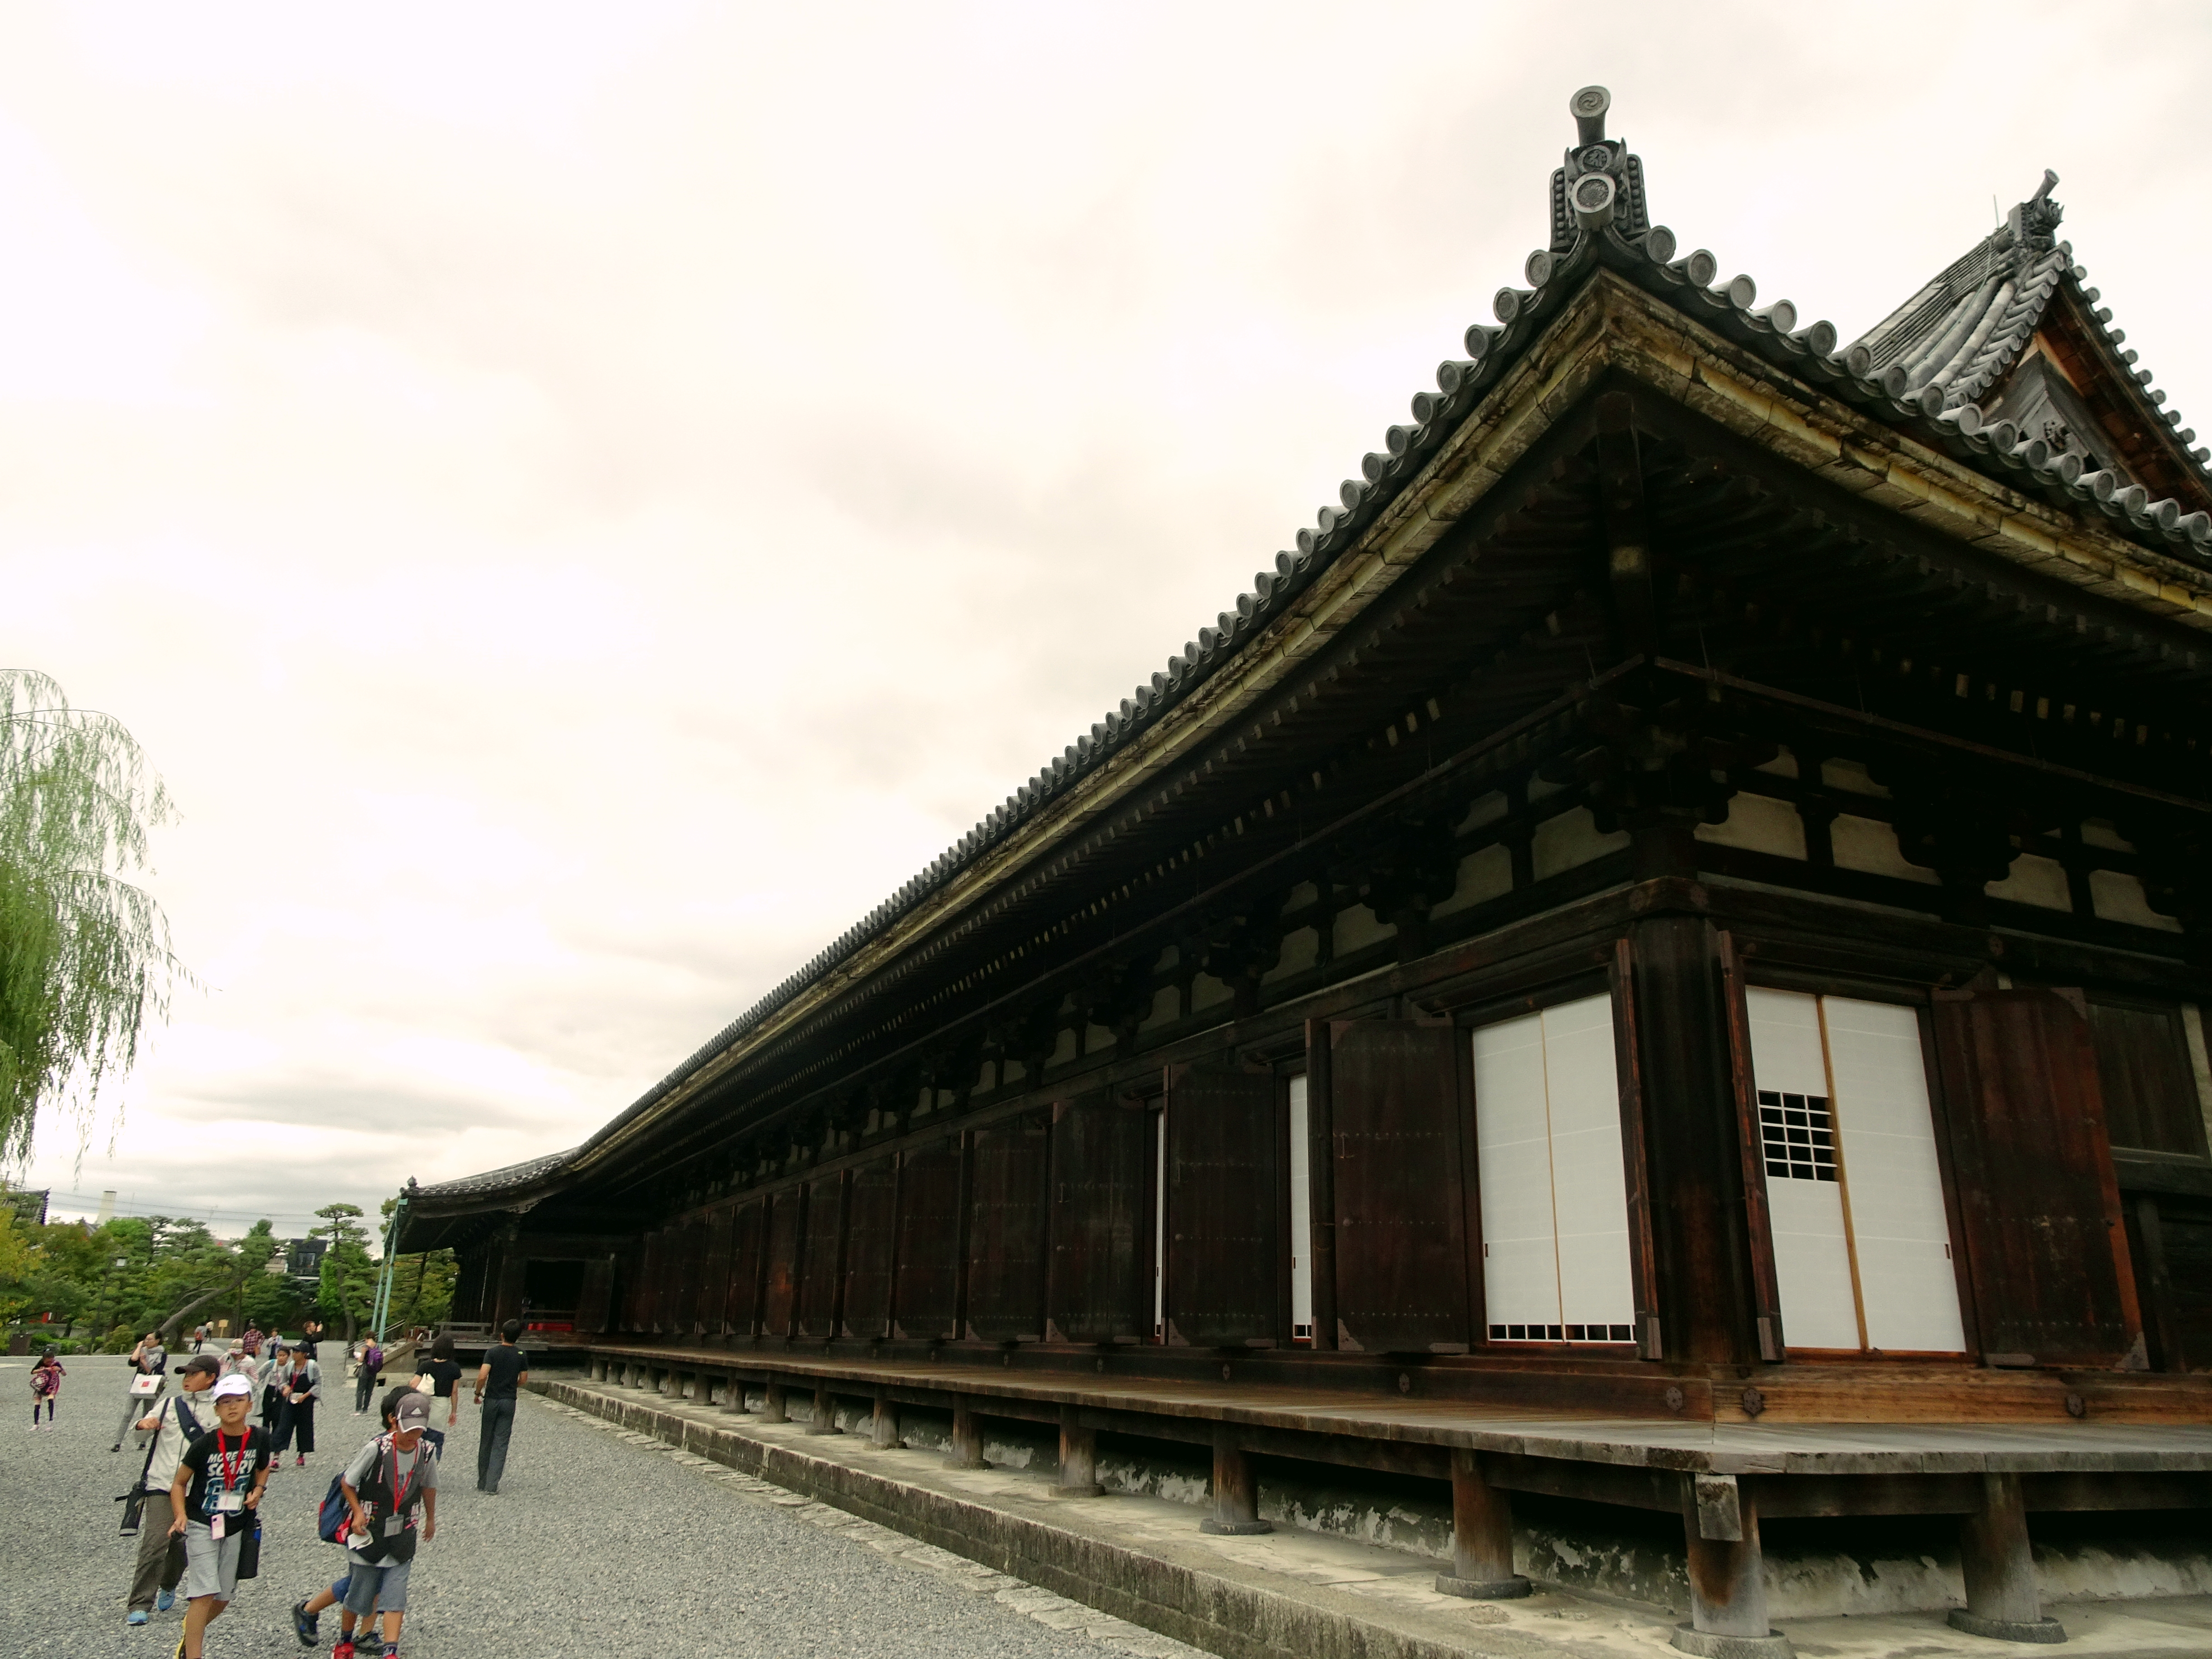 Sanjusangendo in Kyoto houses 1000 Armed Kannon statues